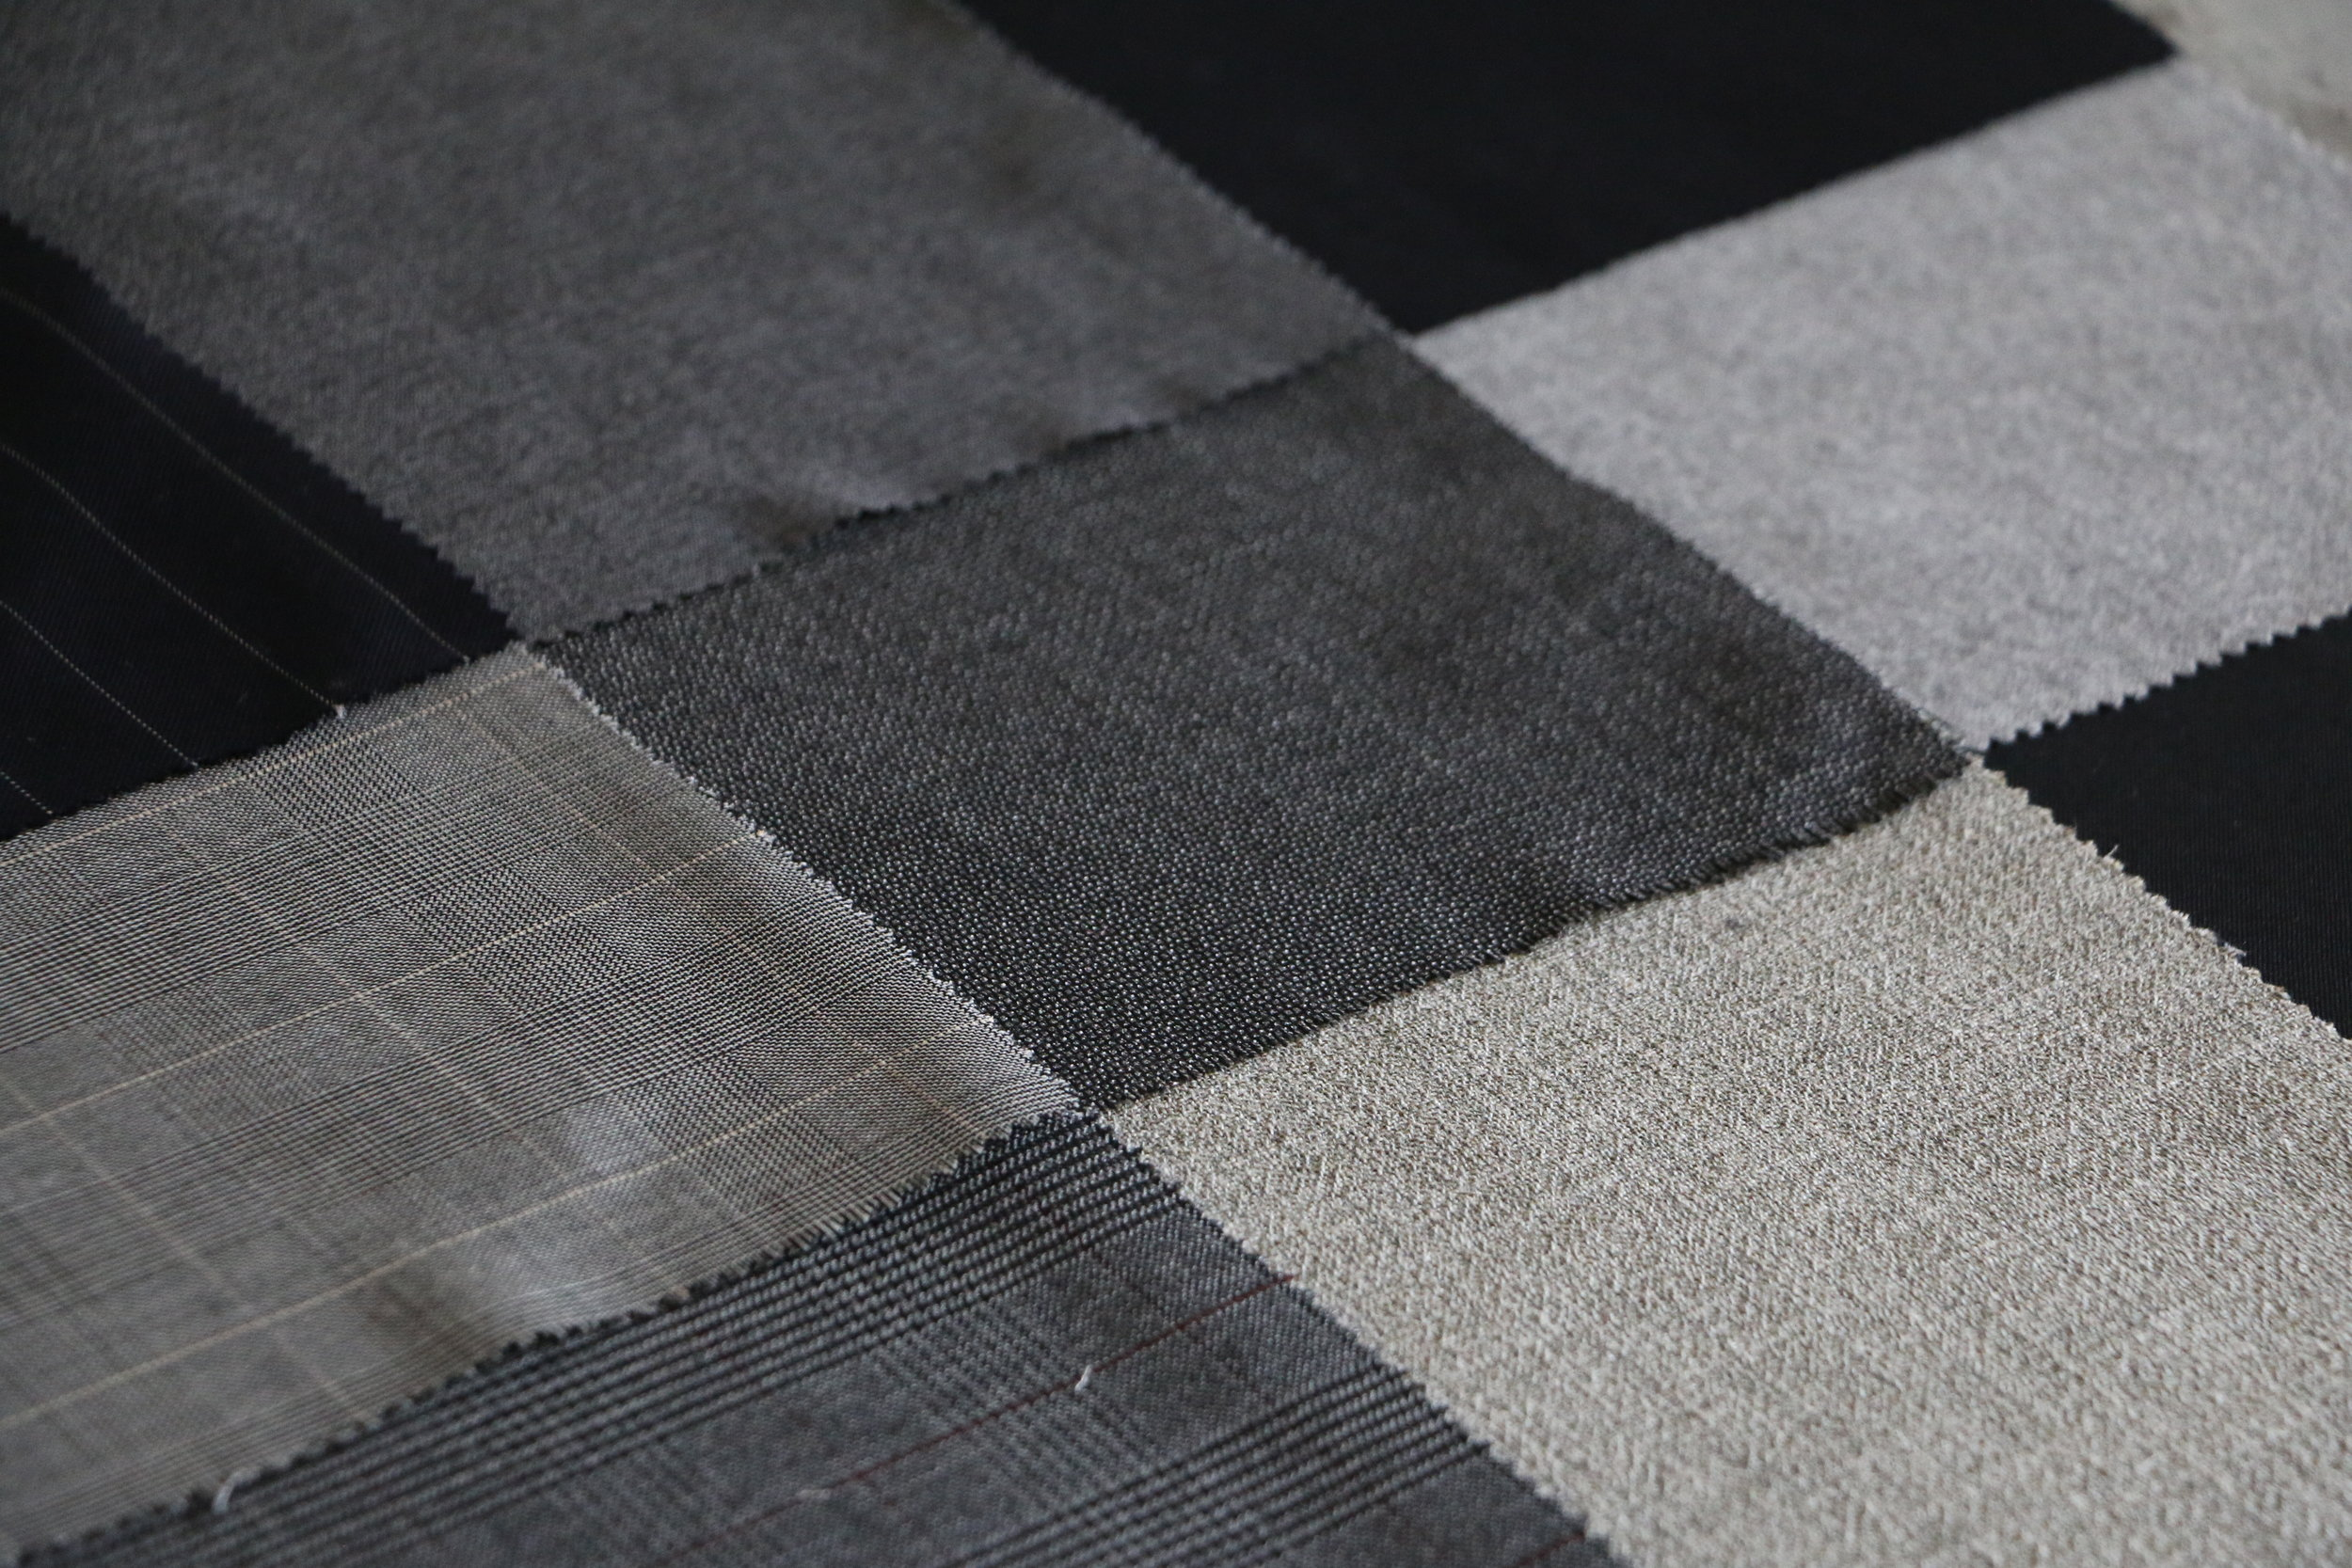 - All wools used to make the pieces are sourced from historic weavers located in northern Italy, notably in Biella, as well as in Yorkshire county, England.